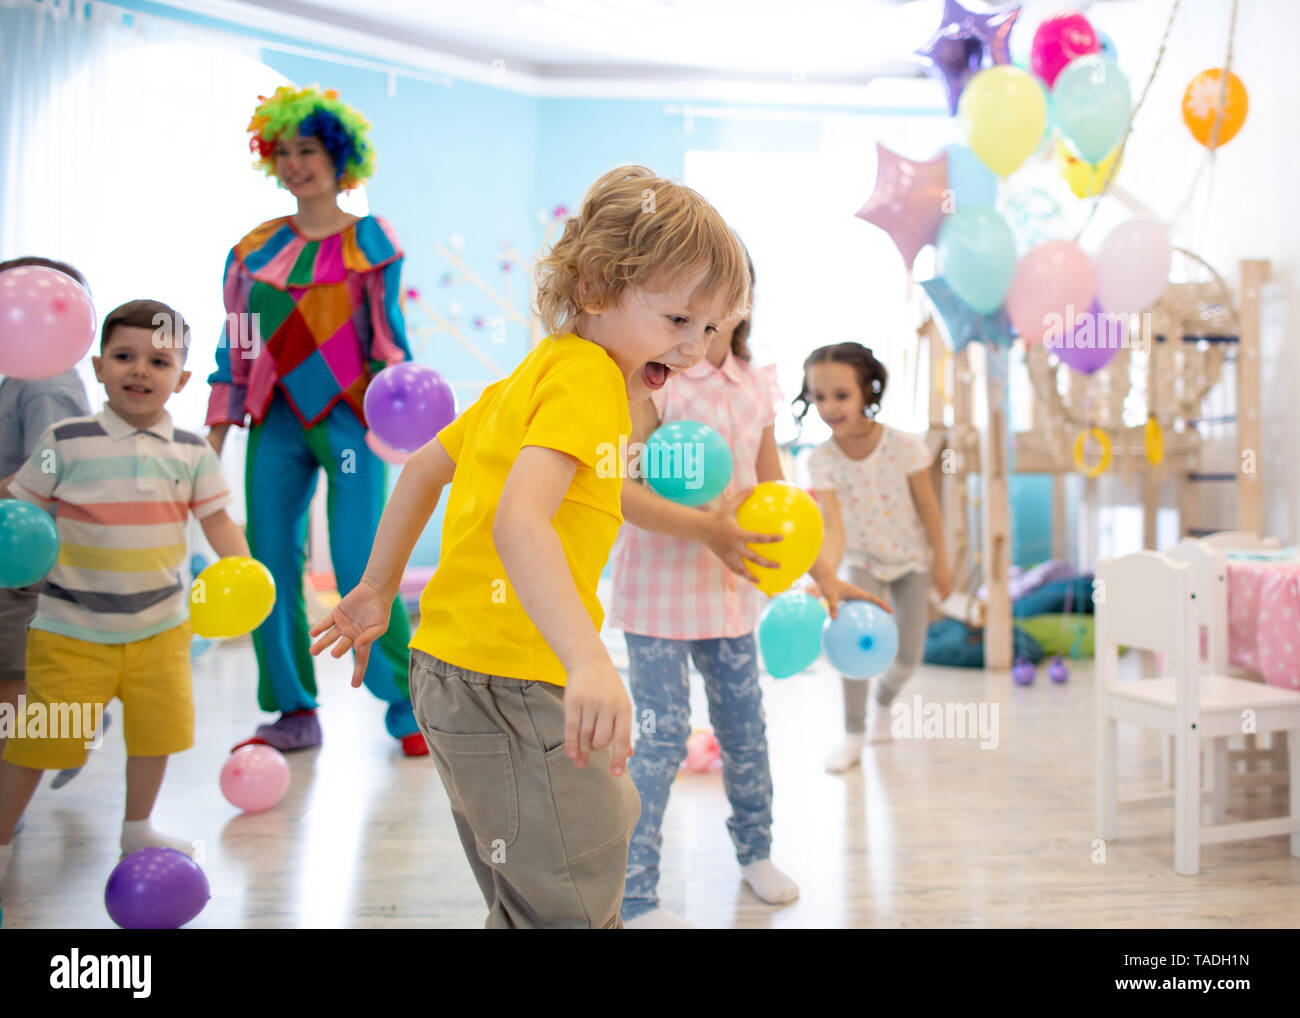 Group of children celebrate birthday party fun together - Stock Image